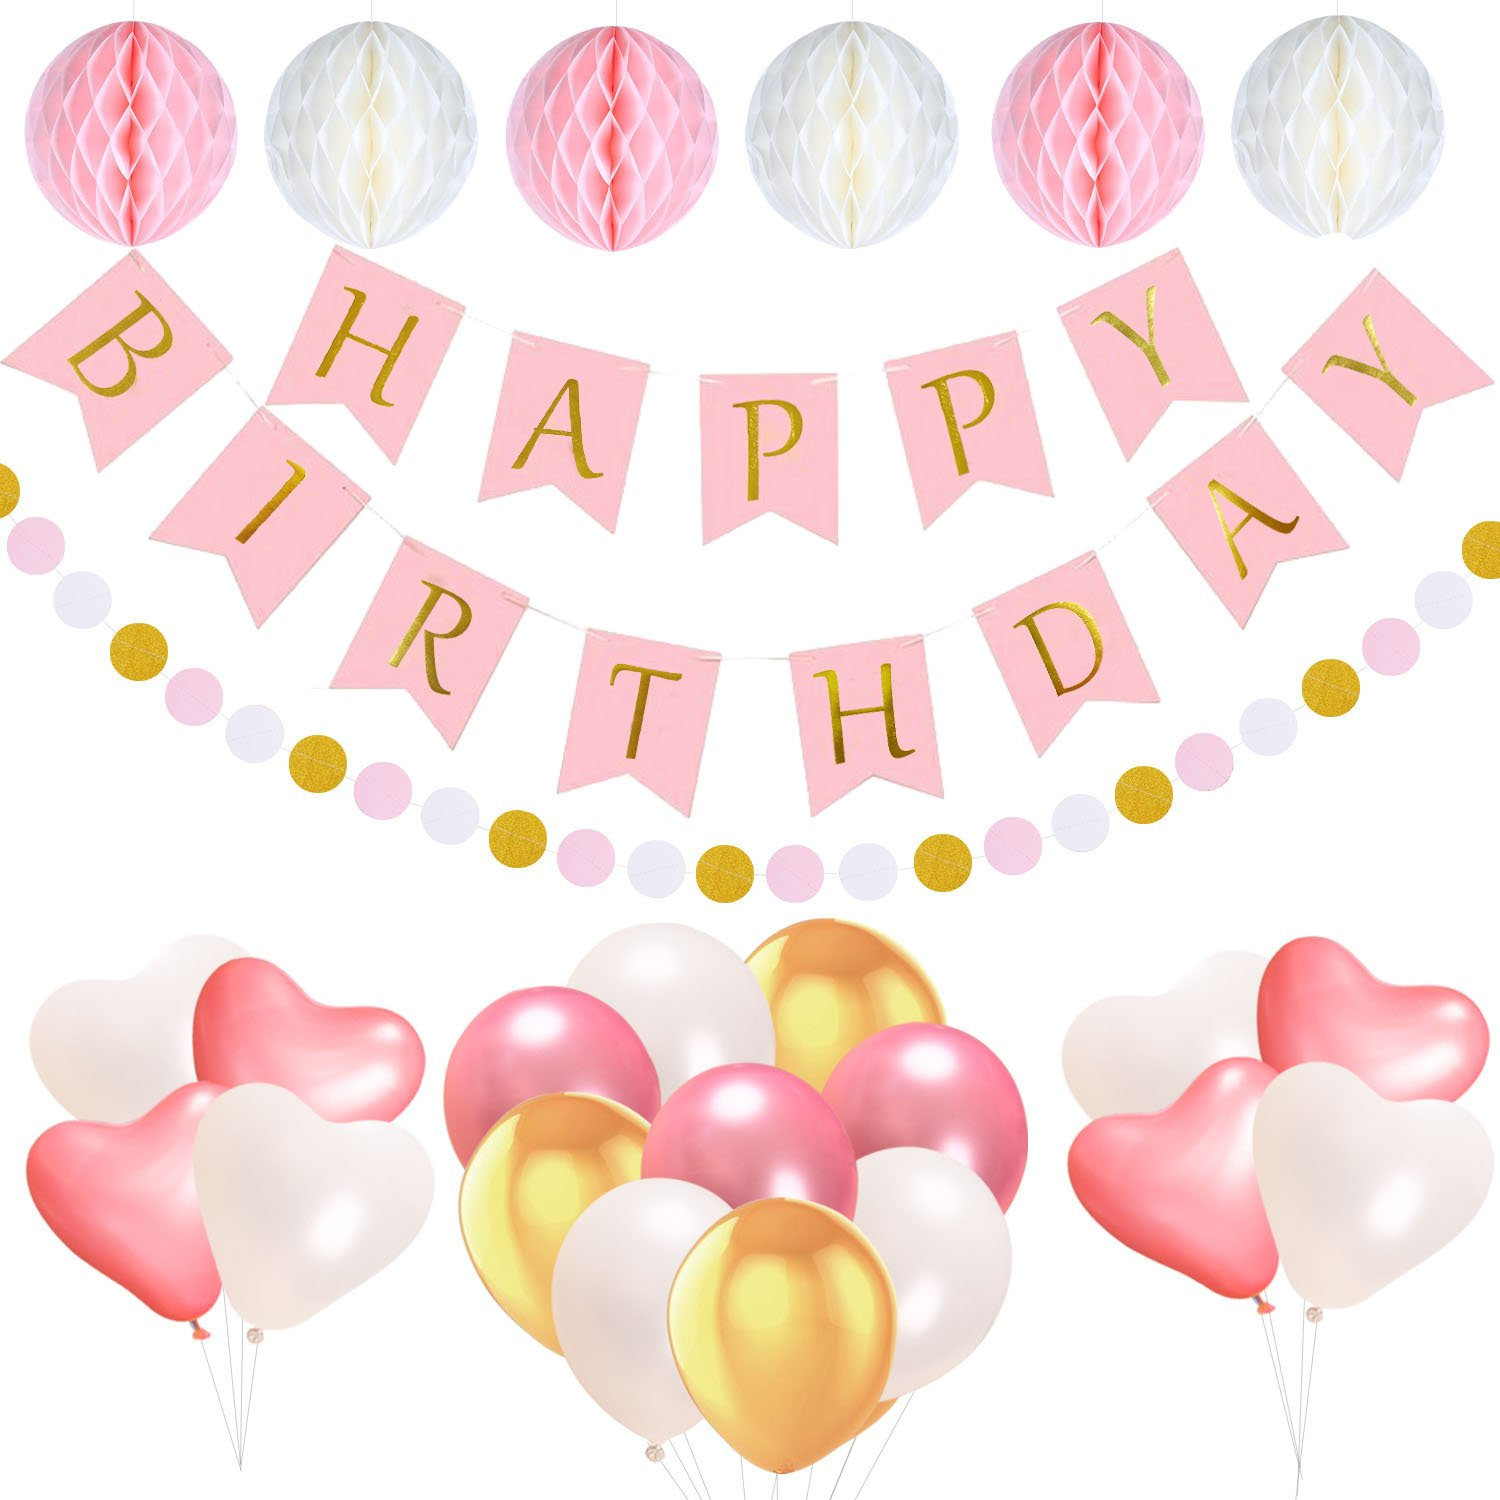 acetek Birthday Decorations Party Supplies,1 Happy Birthday Banner Flags,6 Pom Poms Flowers Kit, 17 Birthday Balloons,Pink and Gold Dot Garland for Kids Girl 1st Birthday Sign Baby Shower Party